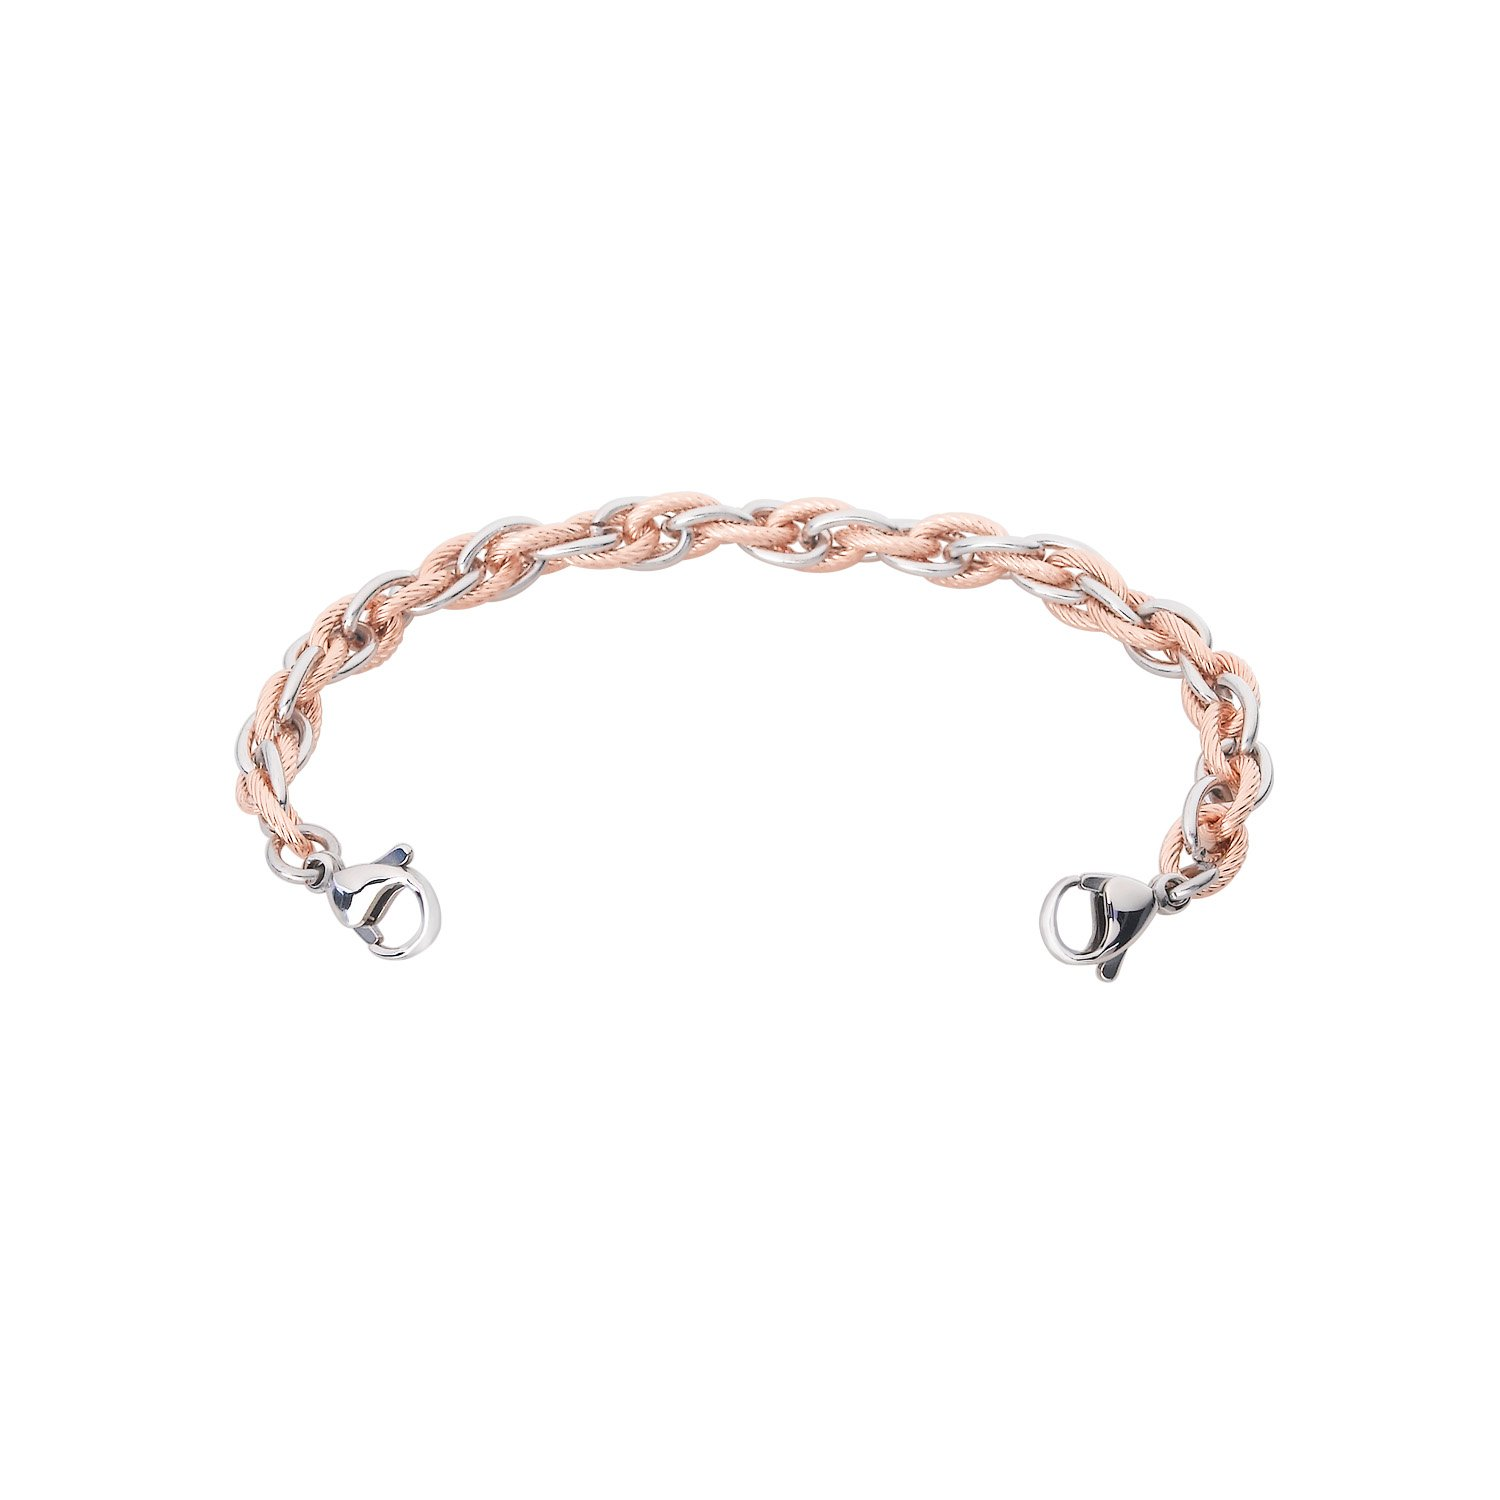 Divoti Inter-Mesh Rose Gold & Silver Medical Alert Replacement Bracelet for Women - 6.0''